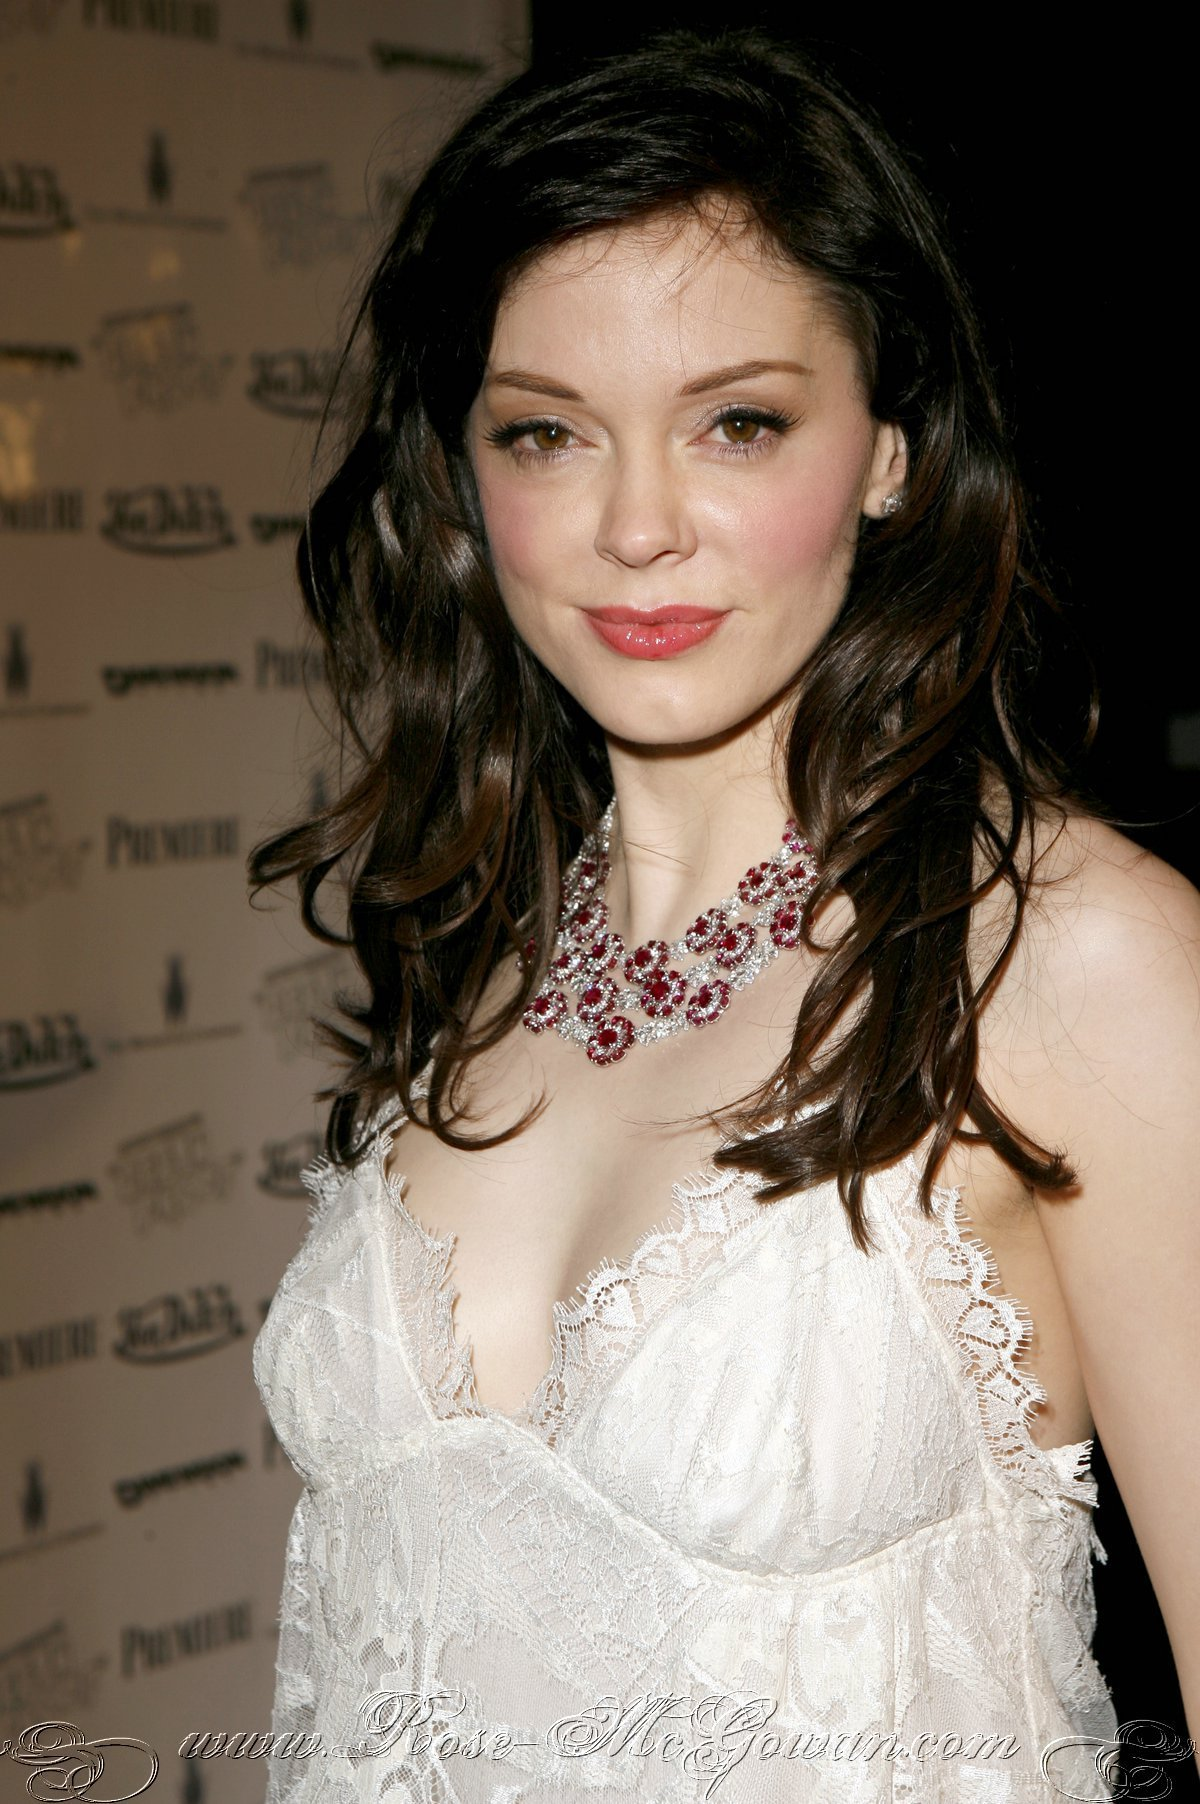 rose mcgowan pictures - photo #8